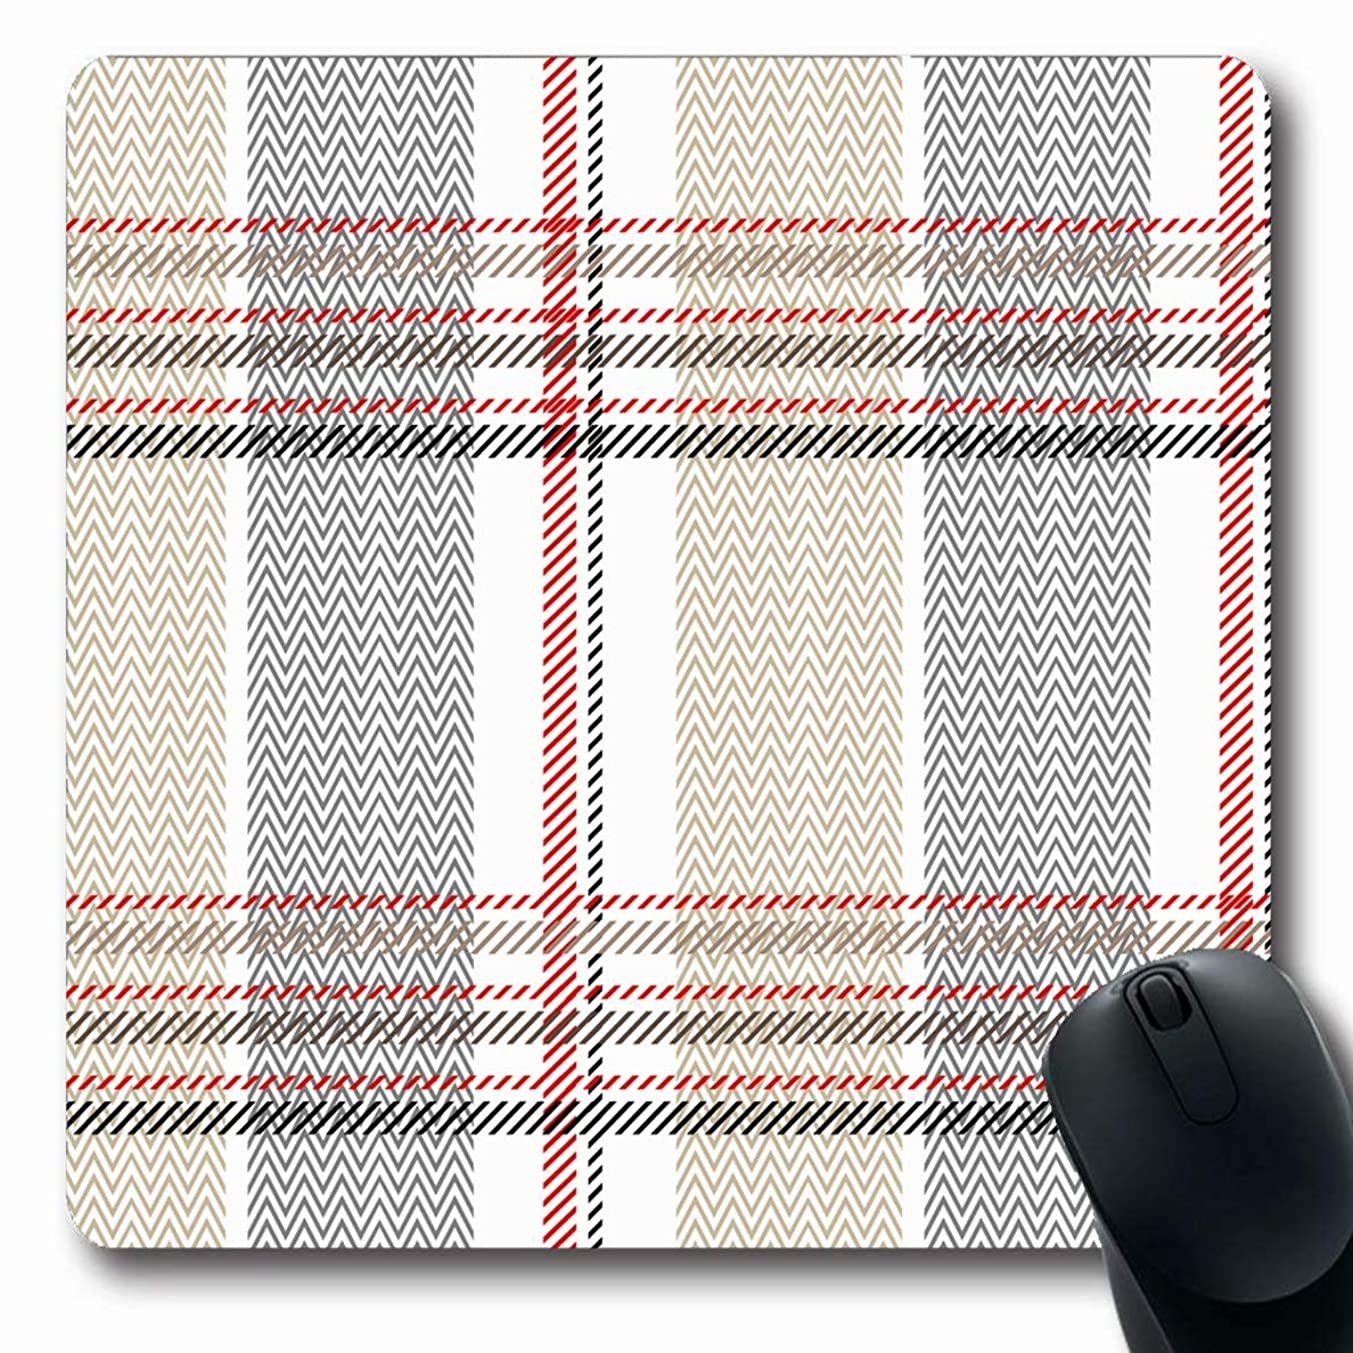 JAMRON Mousepad Oblong 9.8x11.4 Inches Red Black Checkered Plaid Pattern Stripes Zig Zag Irish Beige Folk Grey Abstract Checked Design Non-Slip Rubber Mouse Pad Laptop Notebook